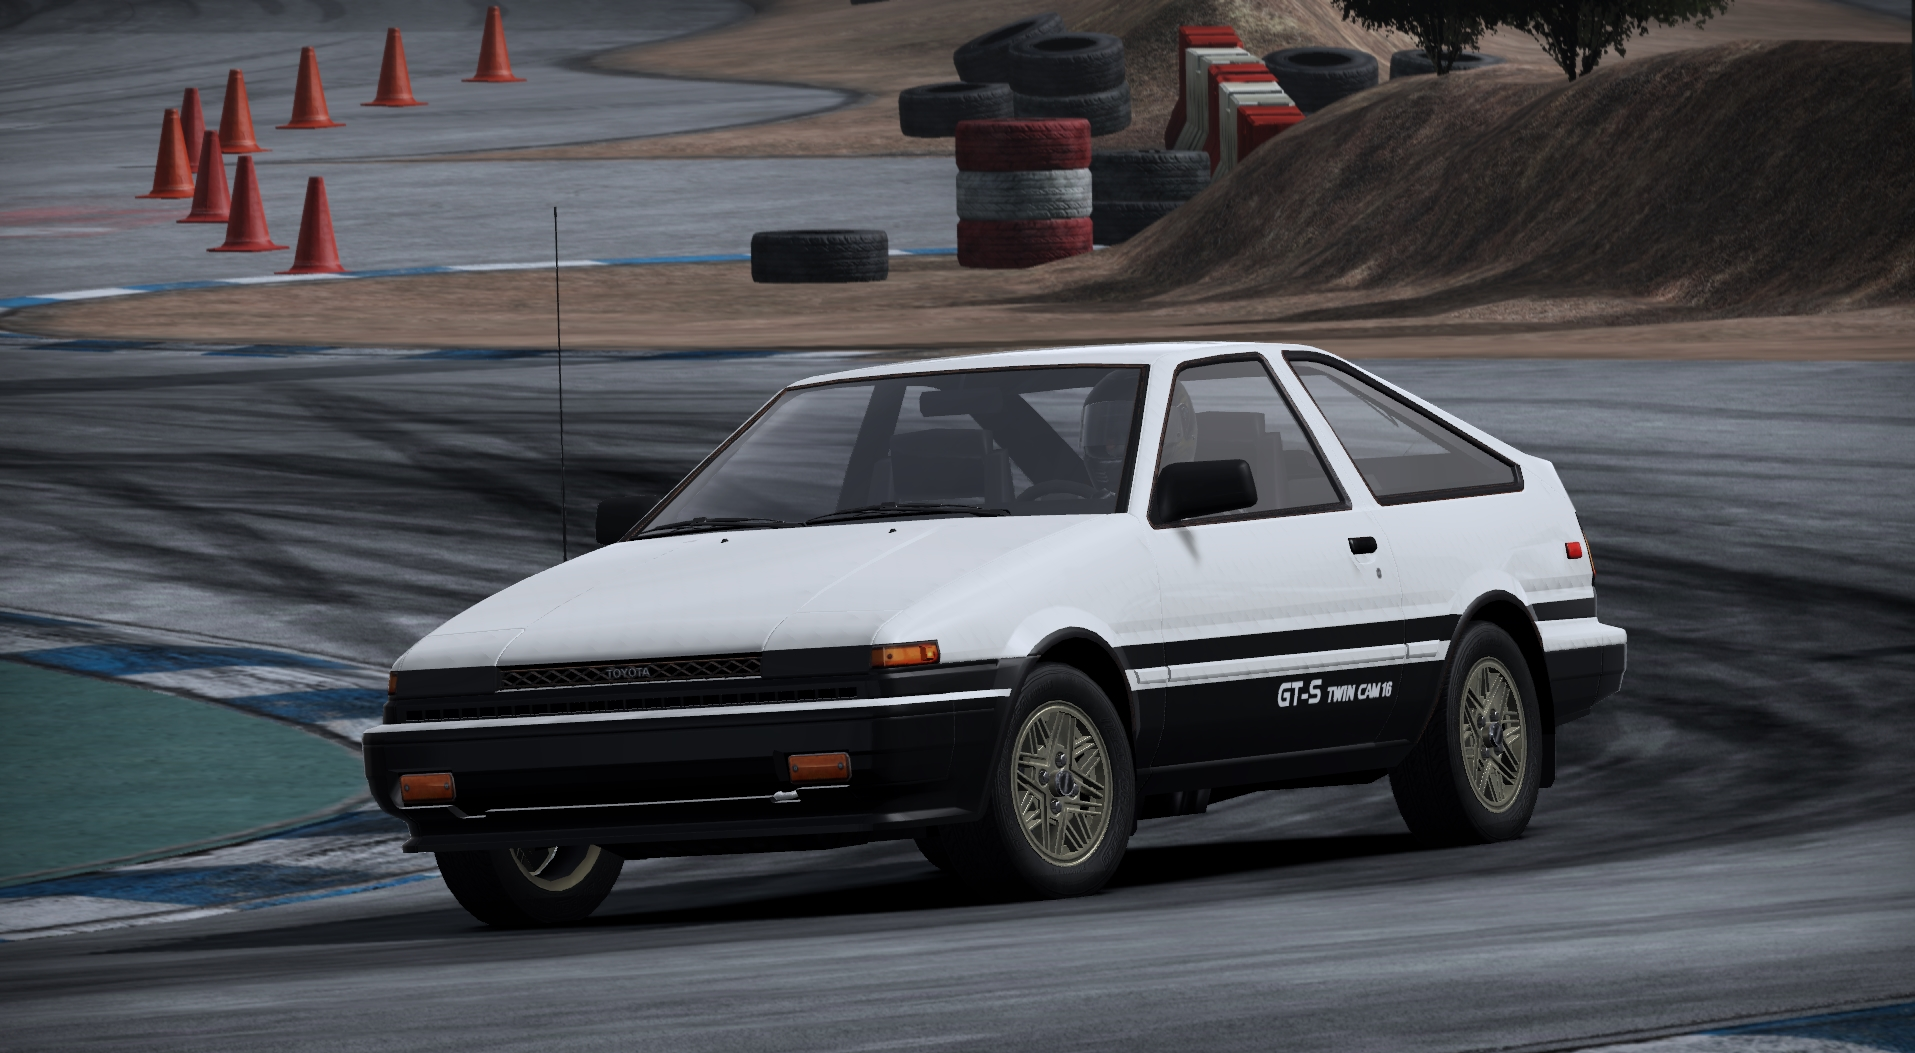 Bank Street Mitsubishi >> Toyota Corolla GT-S | Need for Speed Wiki | FANDOM powered by Wikia